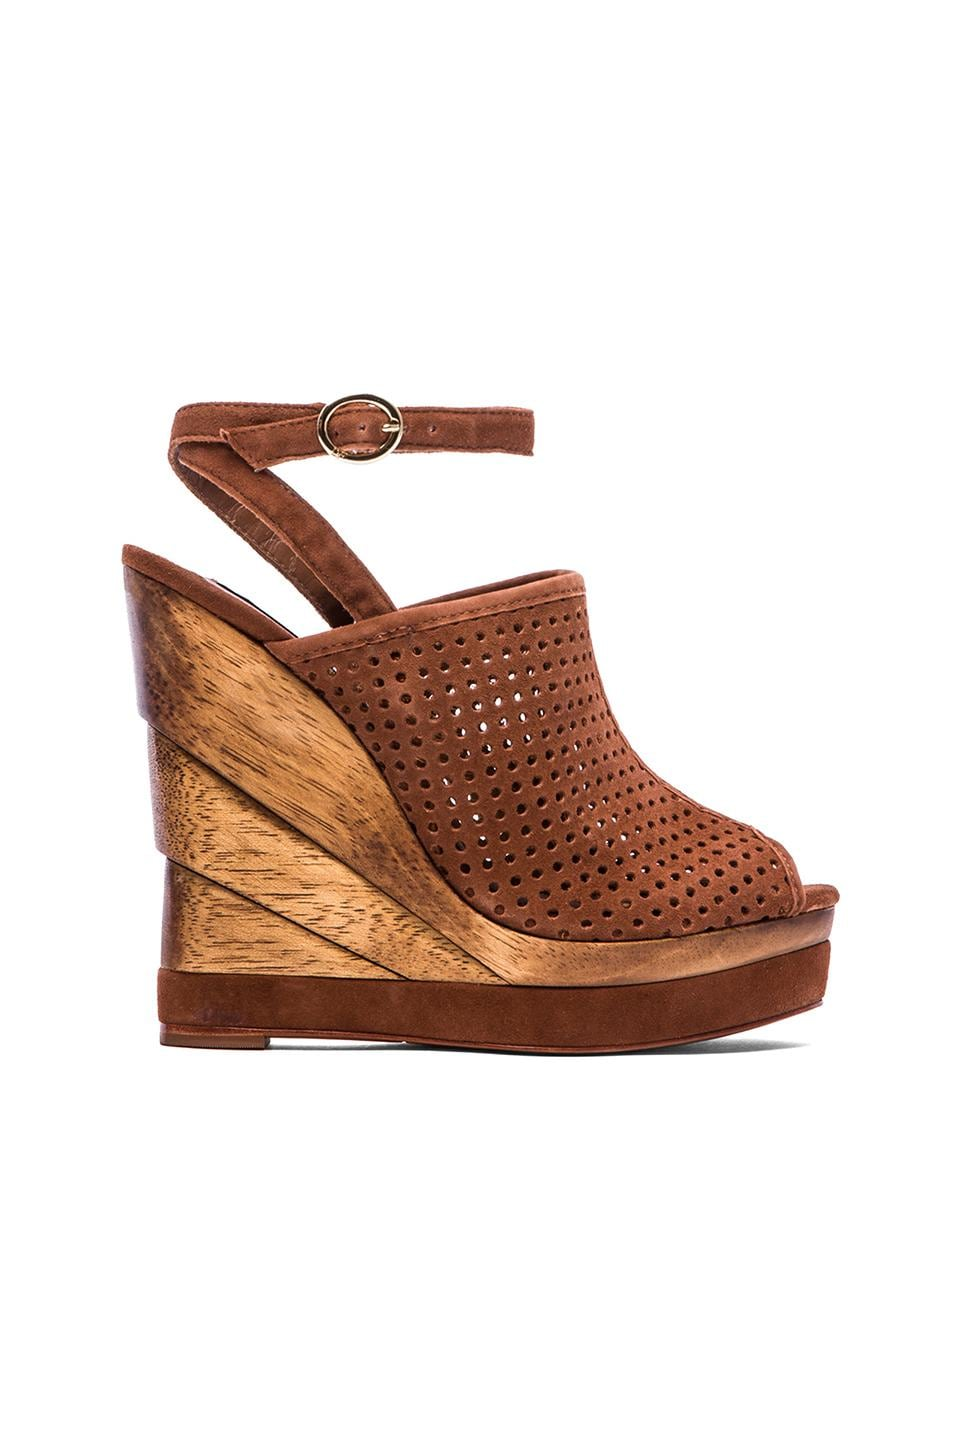 Diane von Furstenberg Paris Wedge in Sandalwood